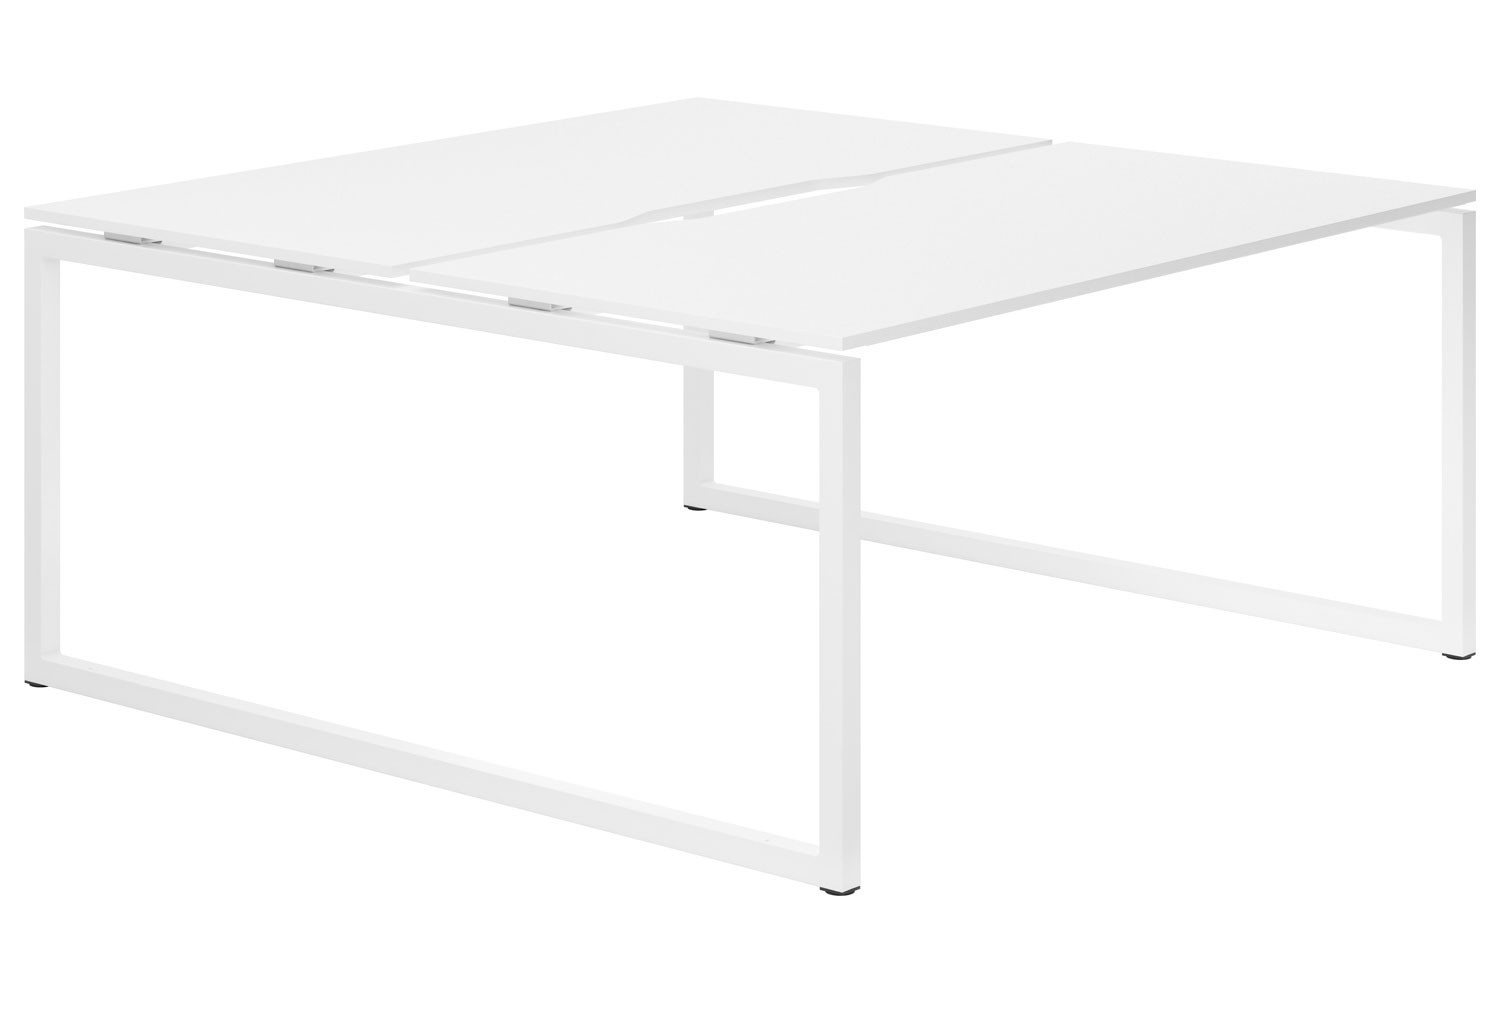 Campos Hooped Leg 2 Person Back To Back Bench Desk (White)